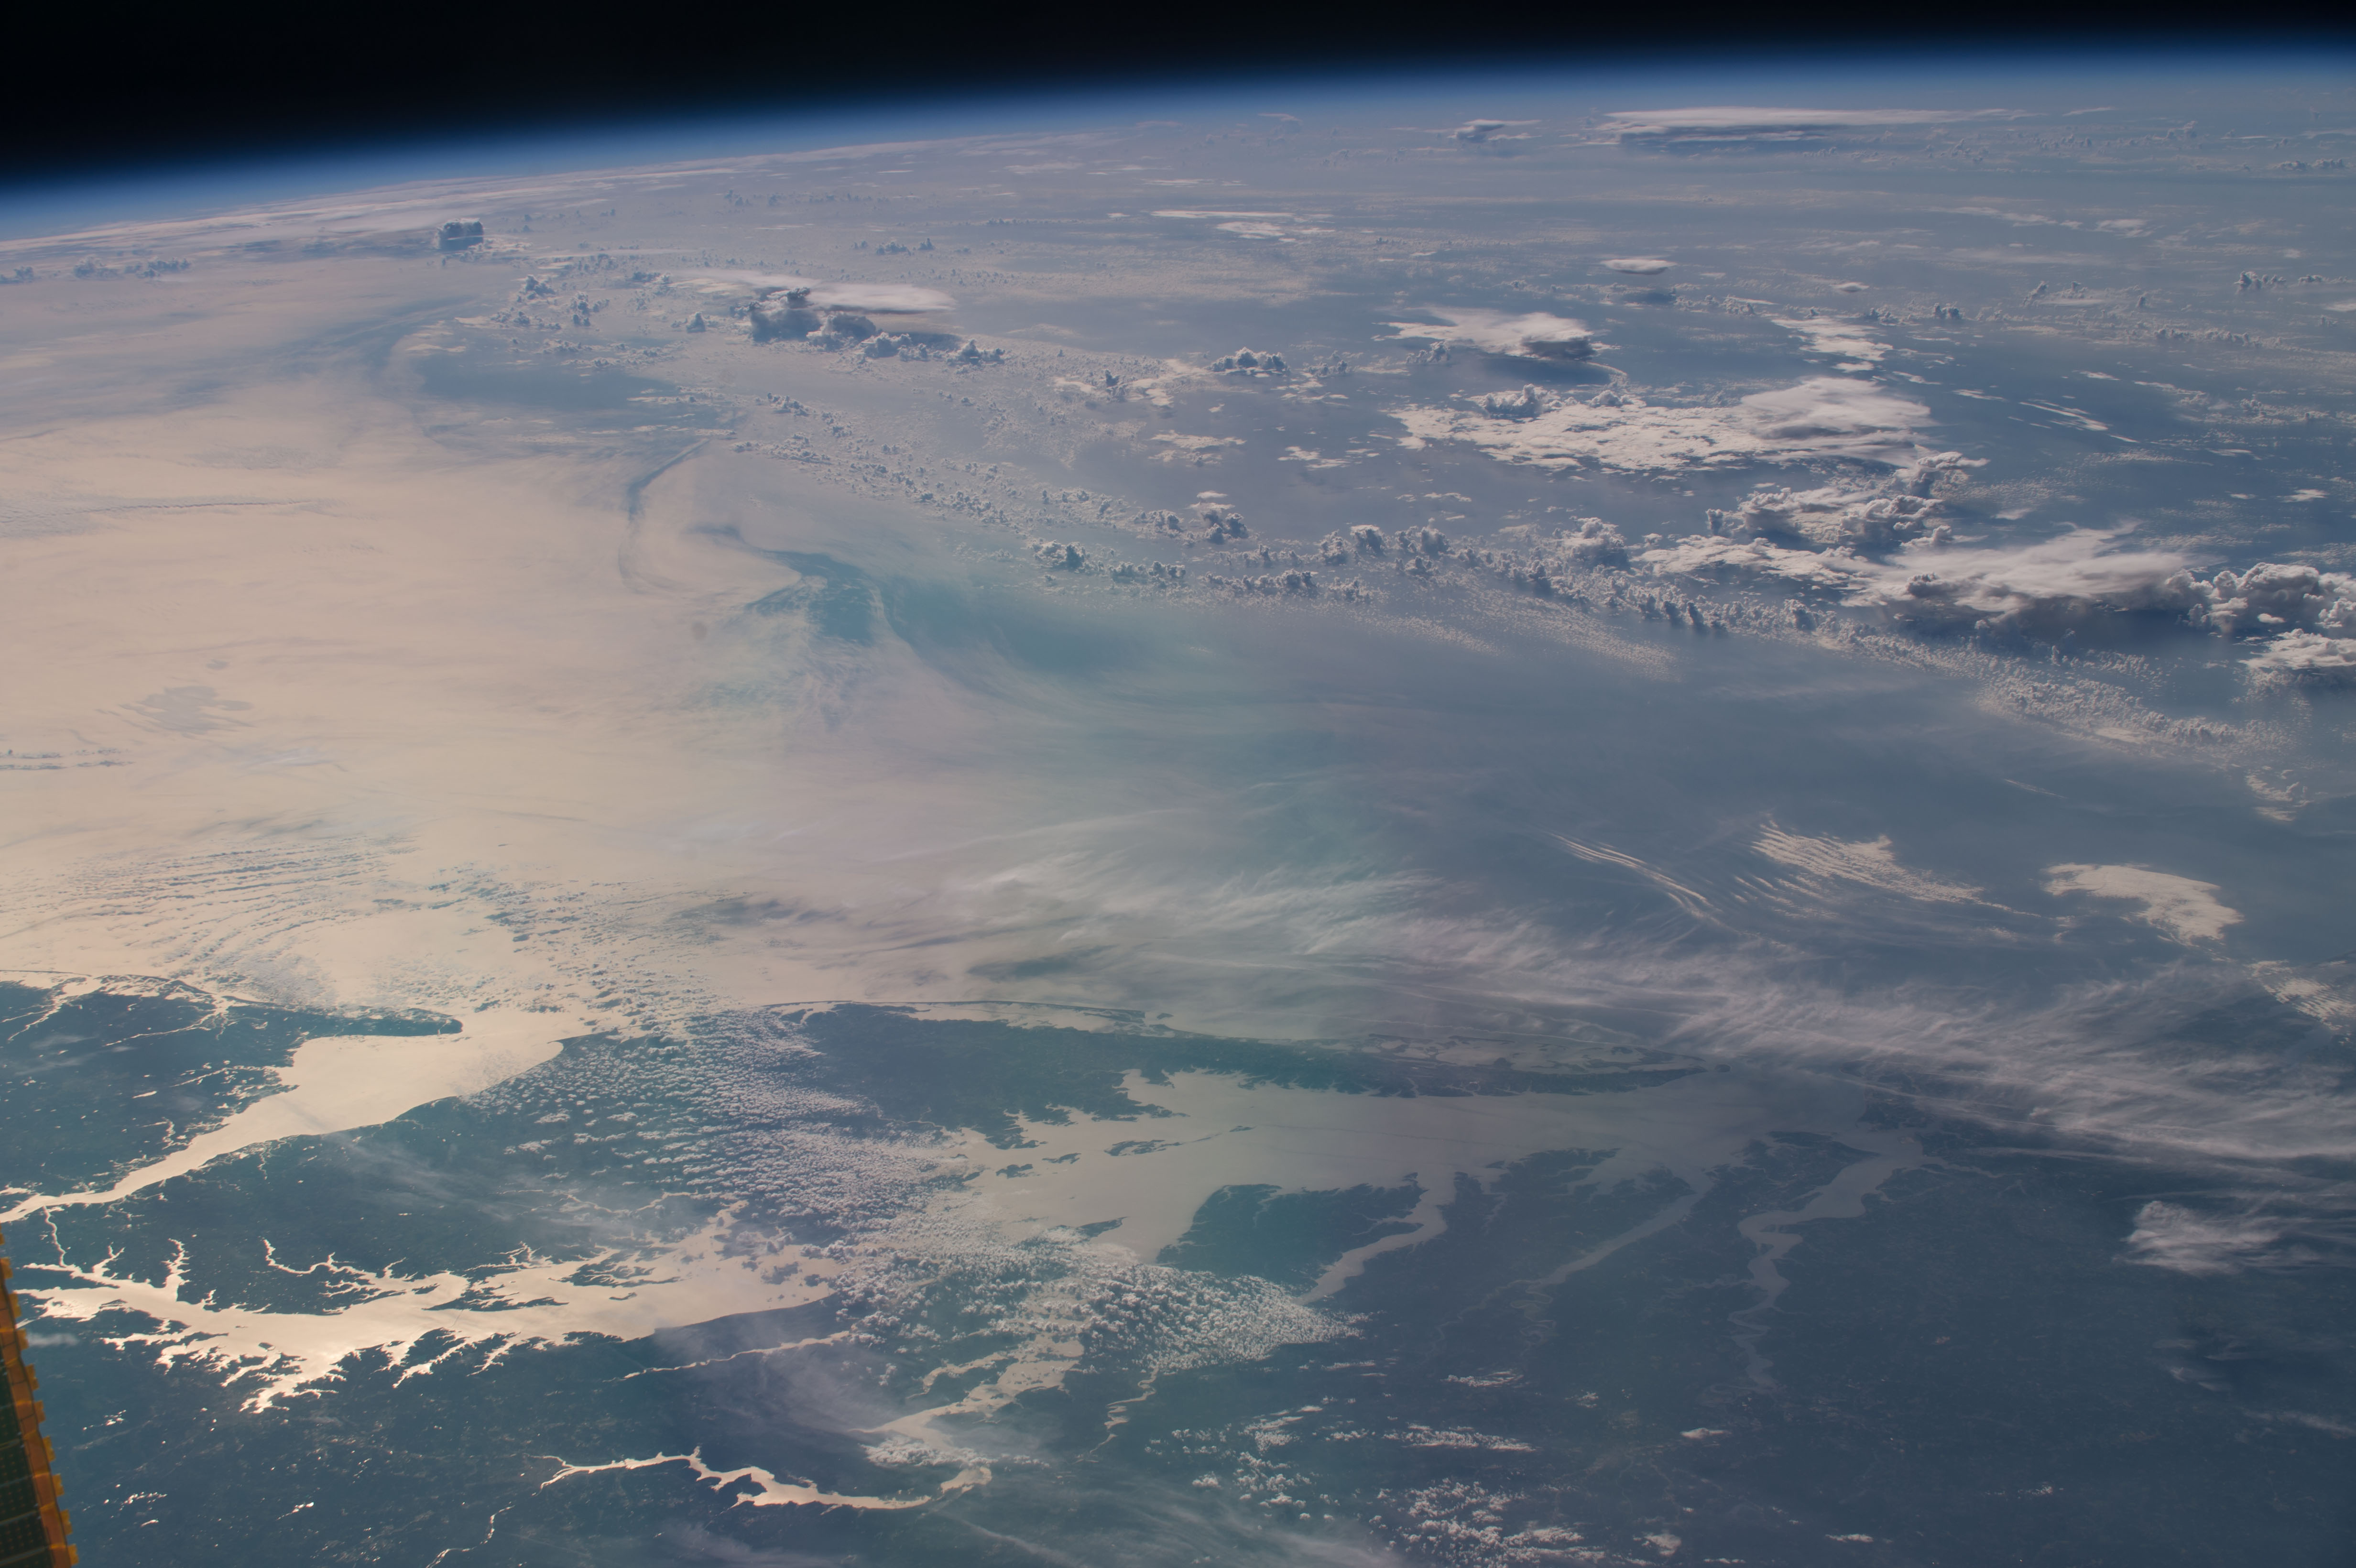 Space Station View of the Chesapeake Bay